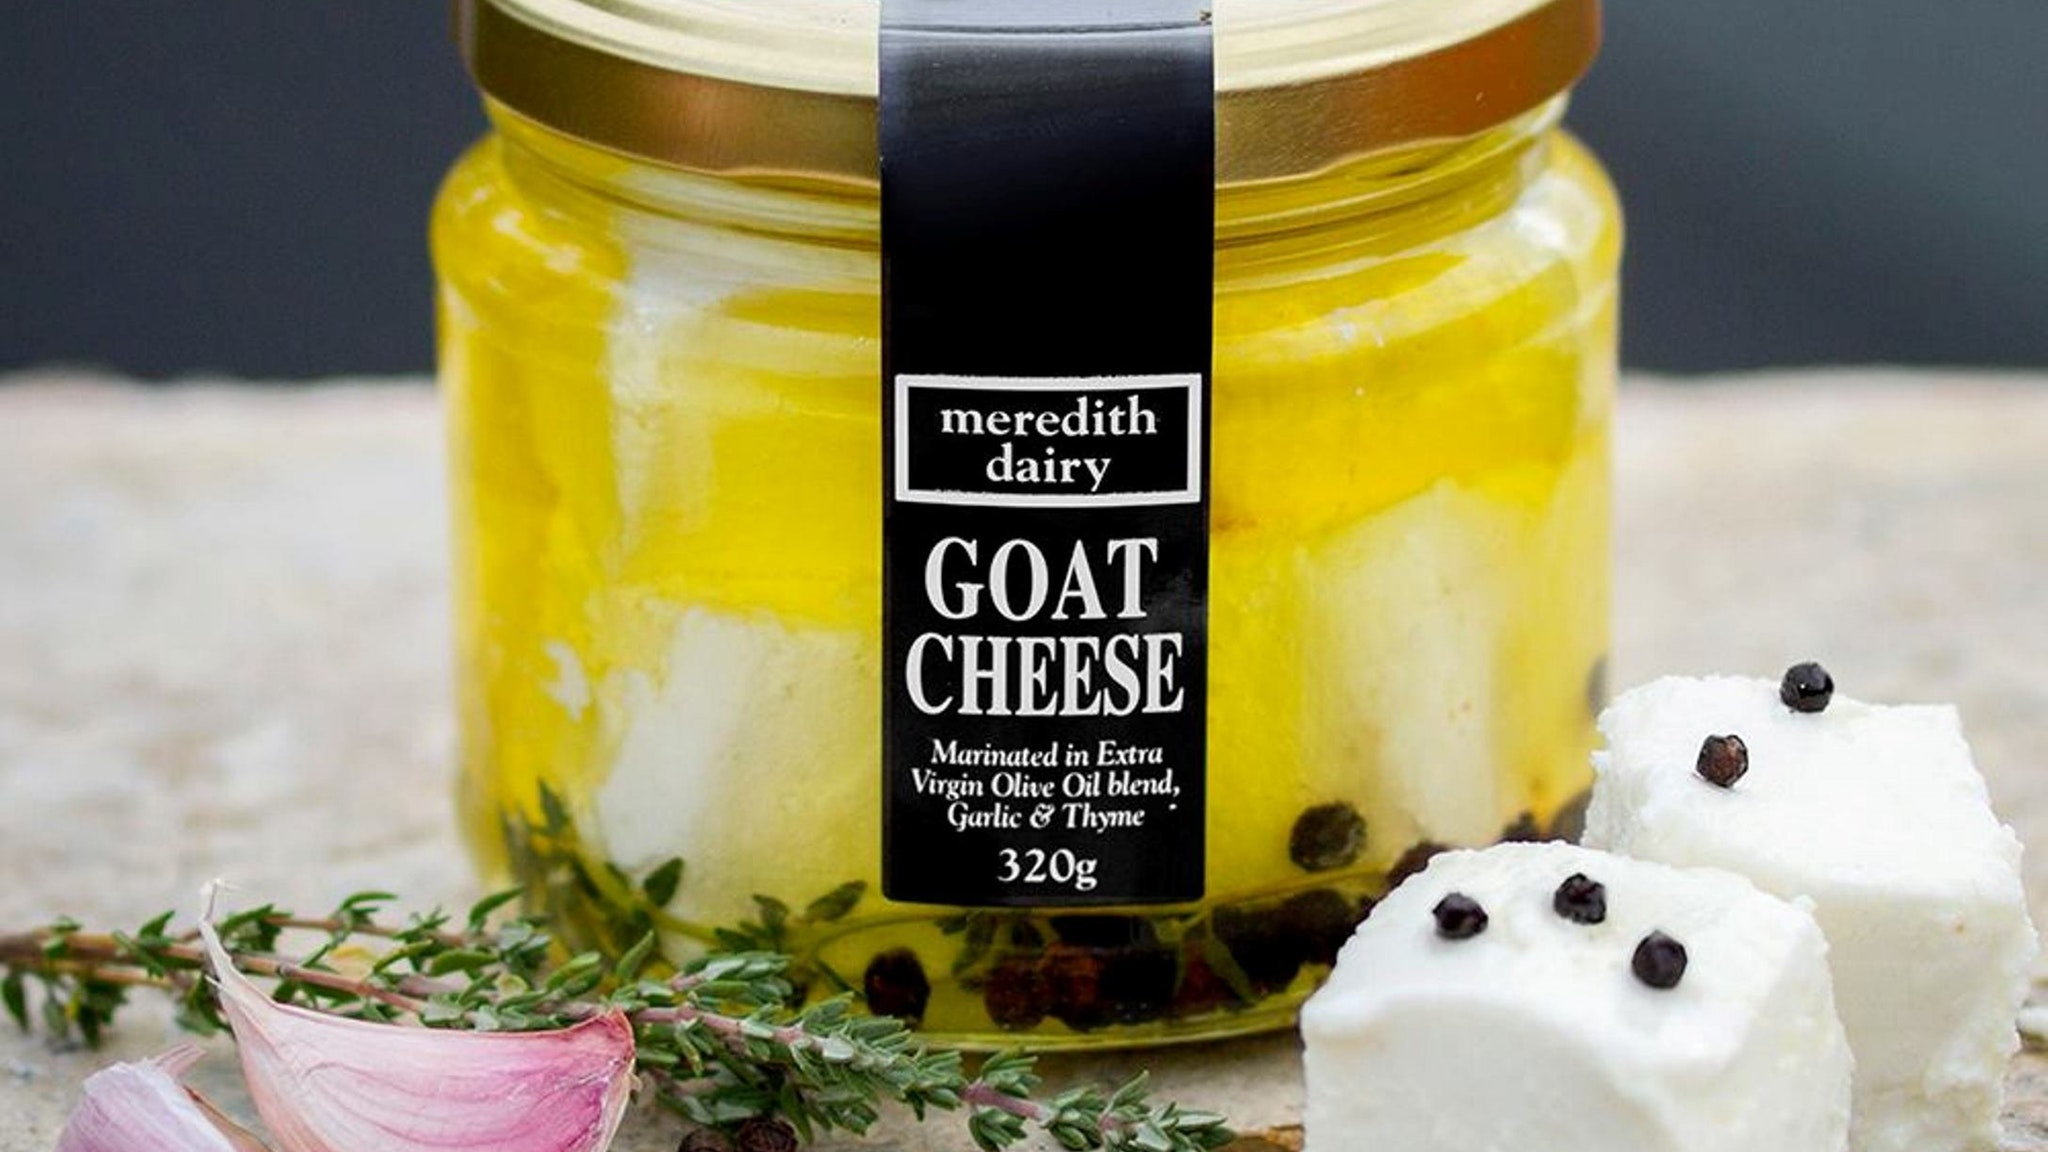 Meredith Dairy Goat Cheese